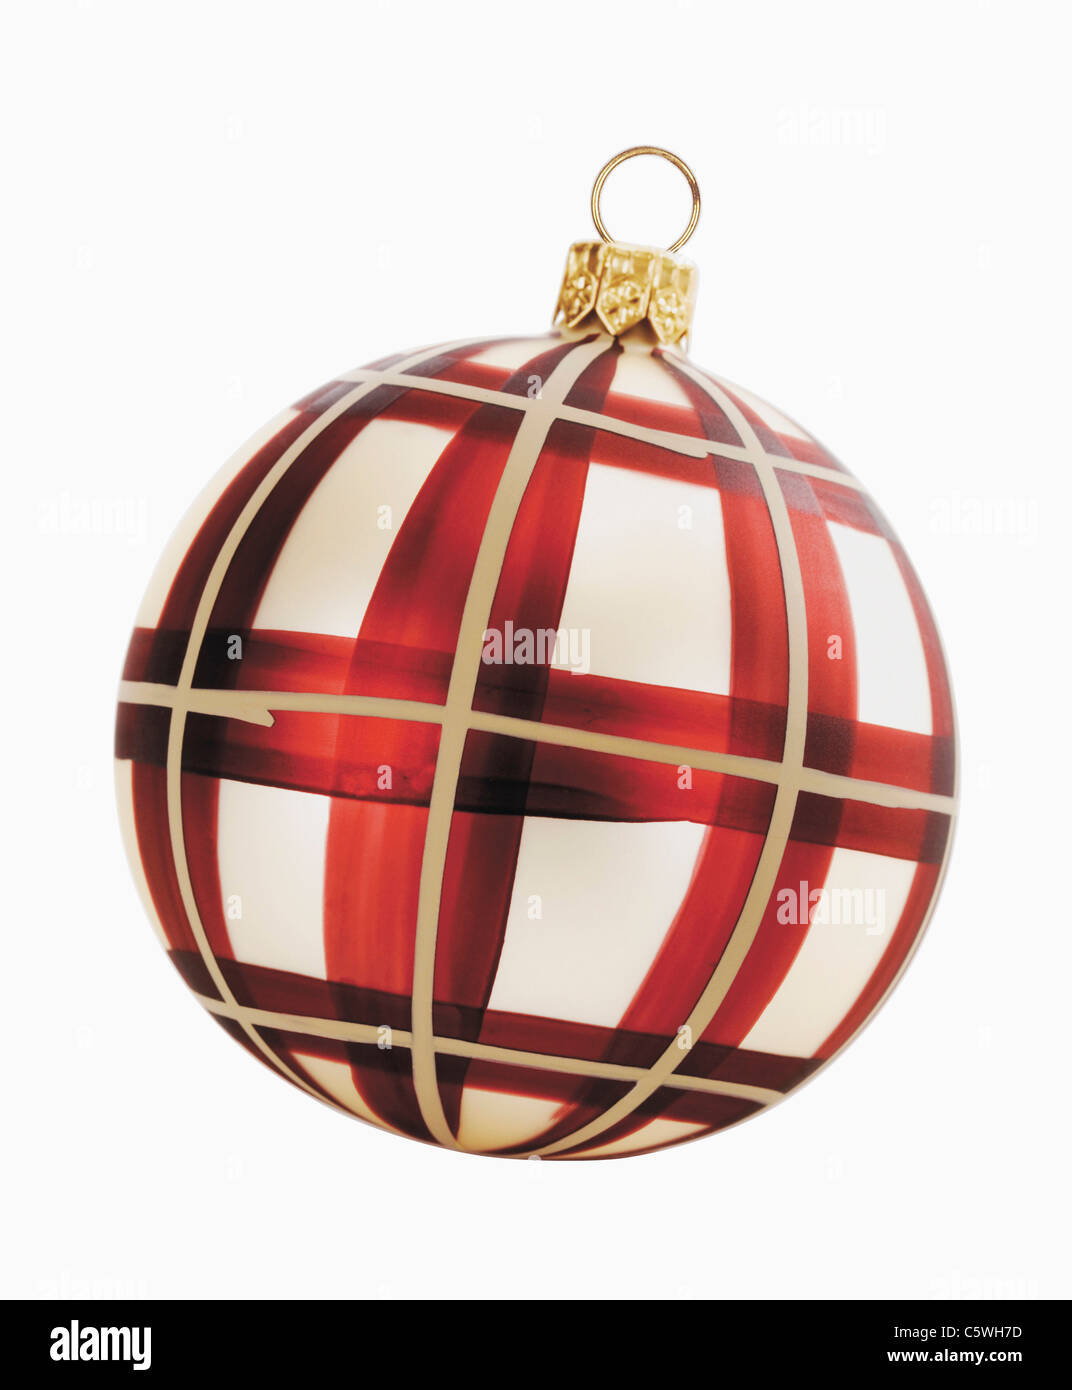 Christmas bauble against white background, close-up - Stock Image